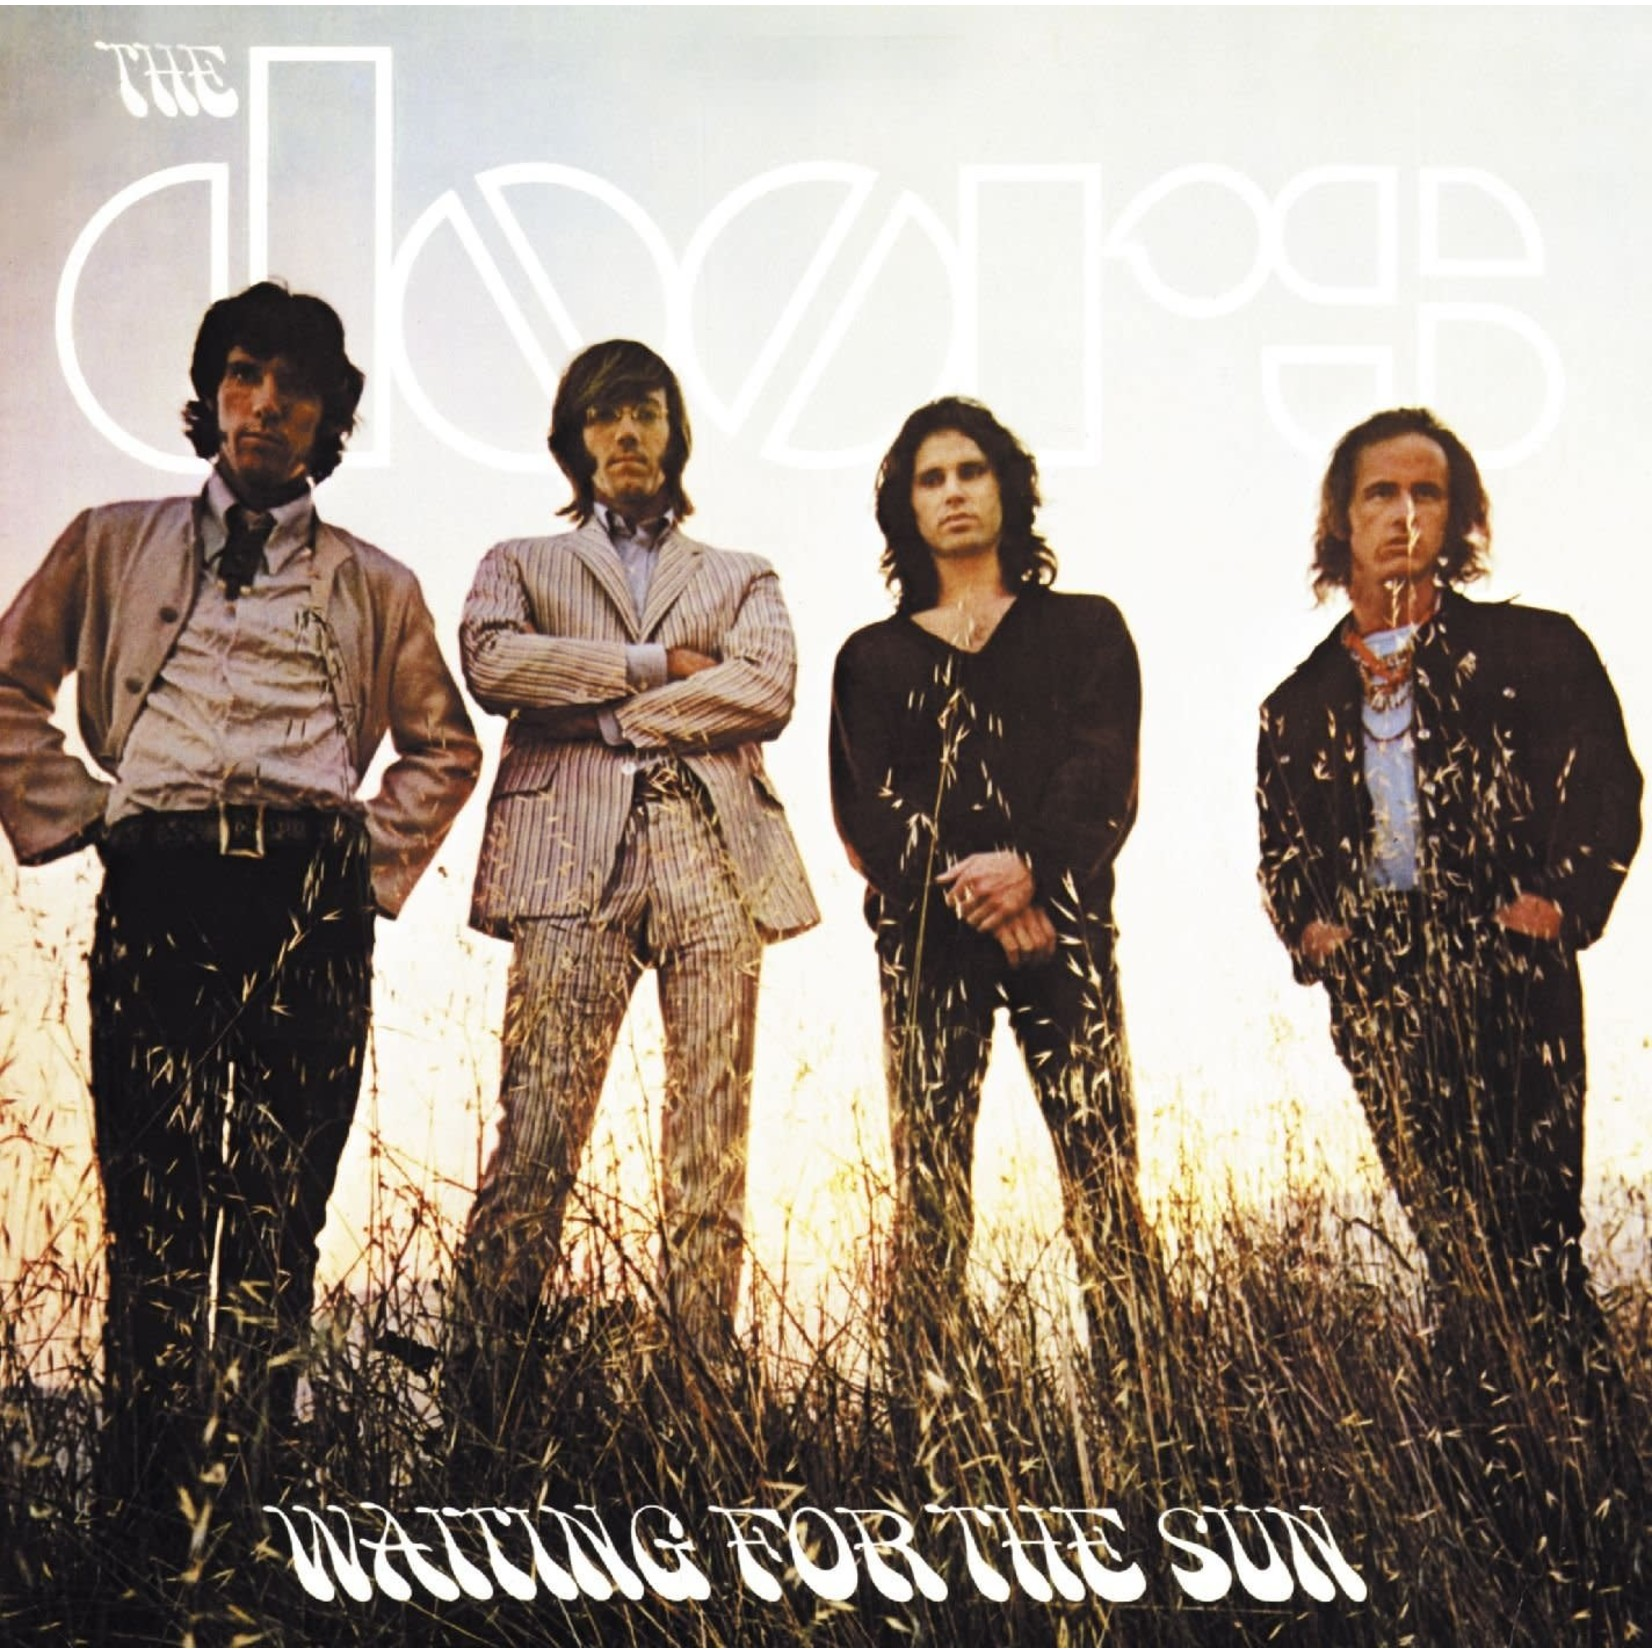 [New] Doors: Waiting For The Sun